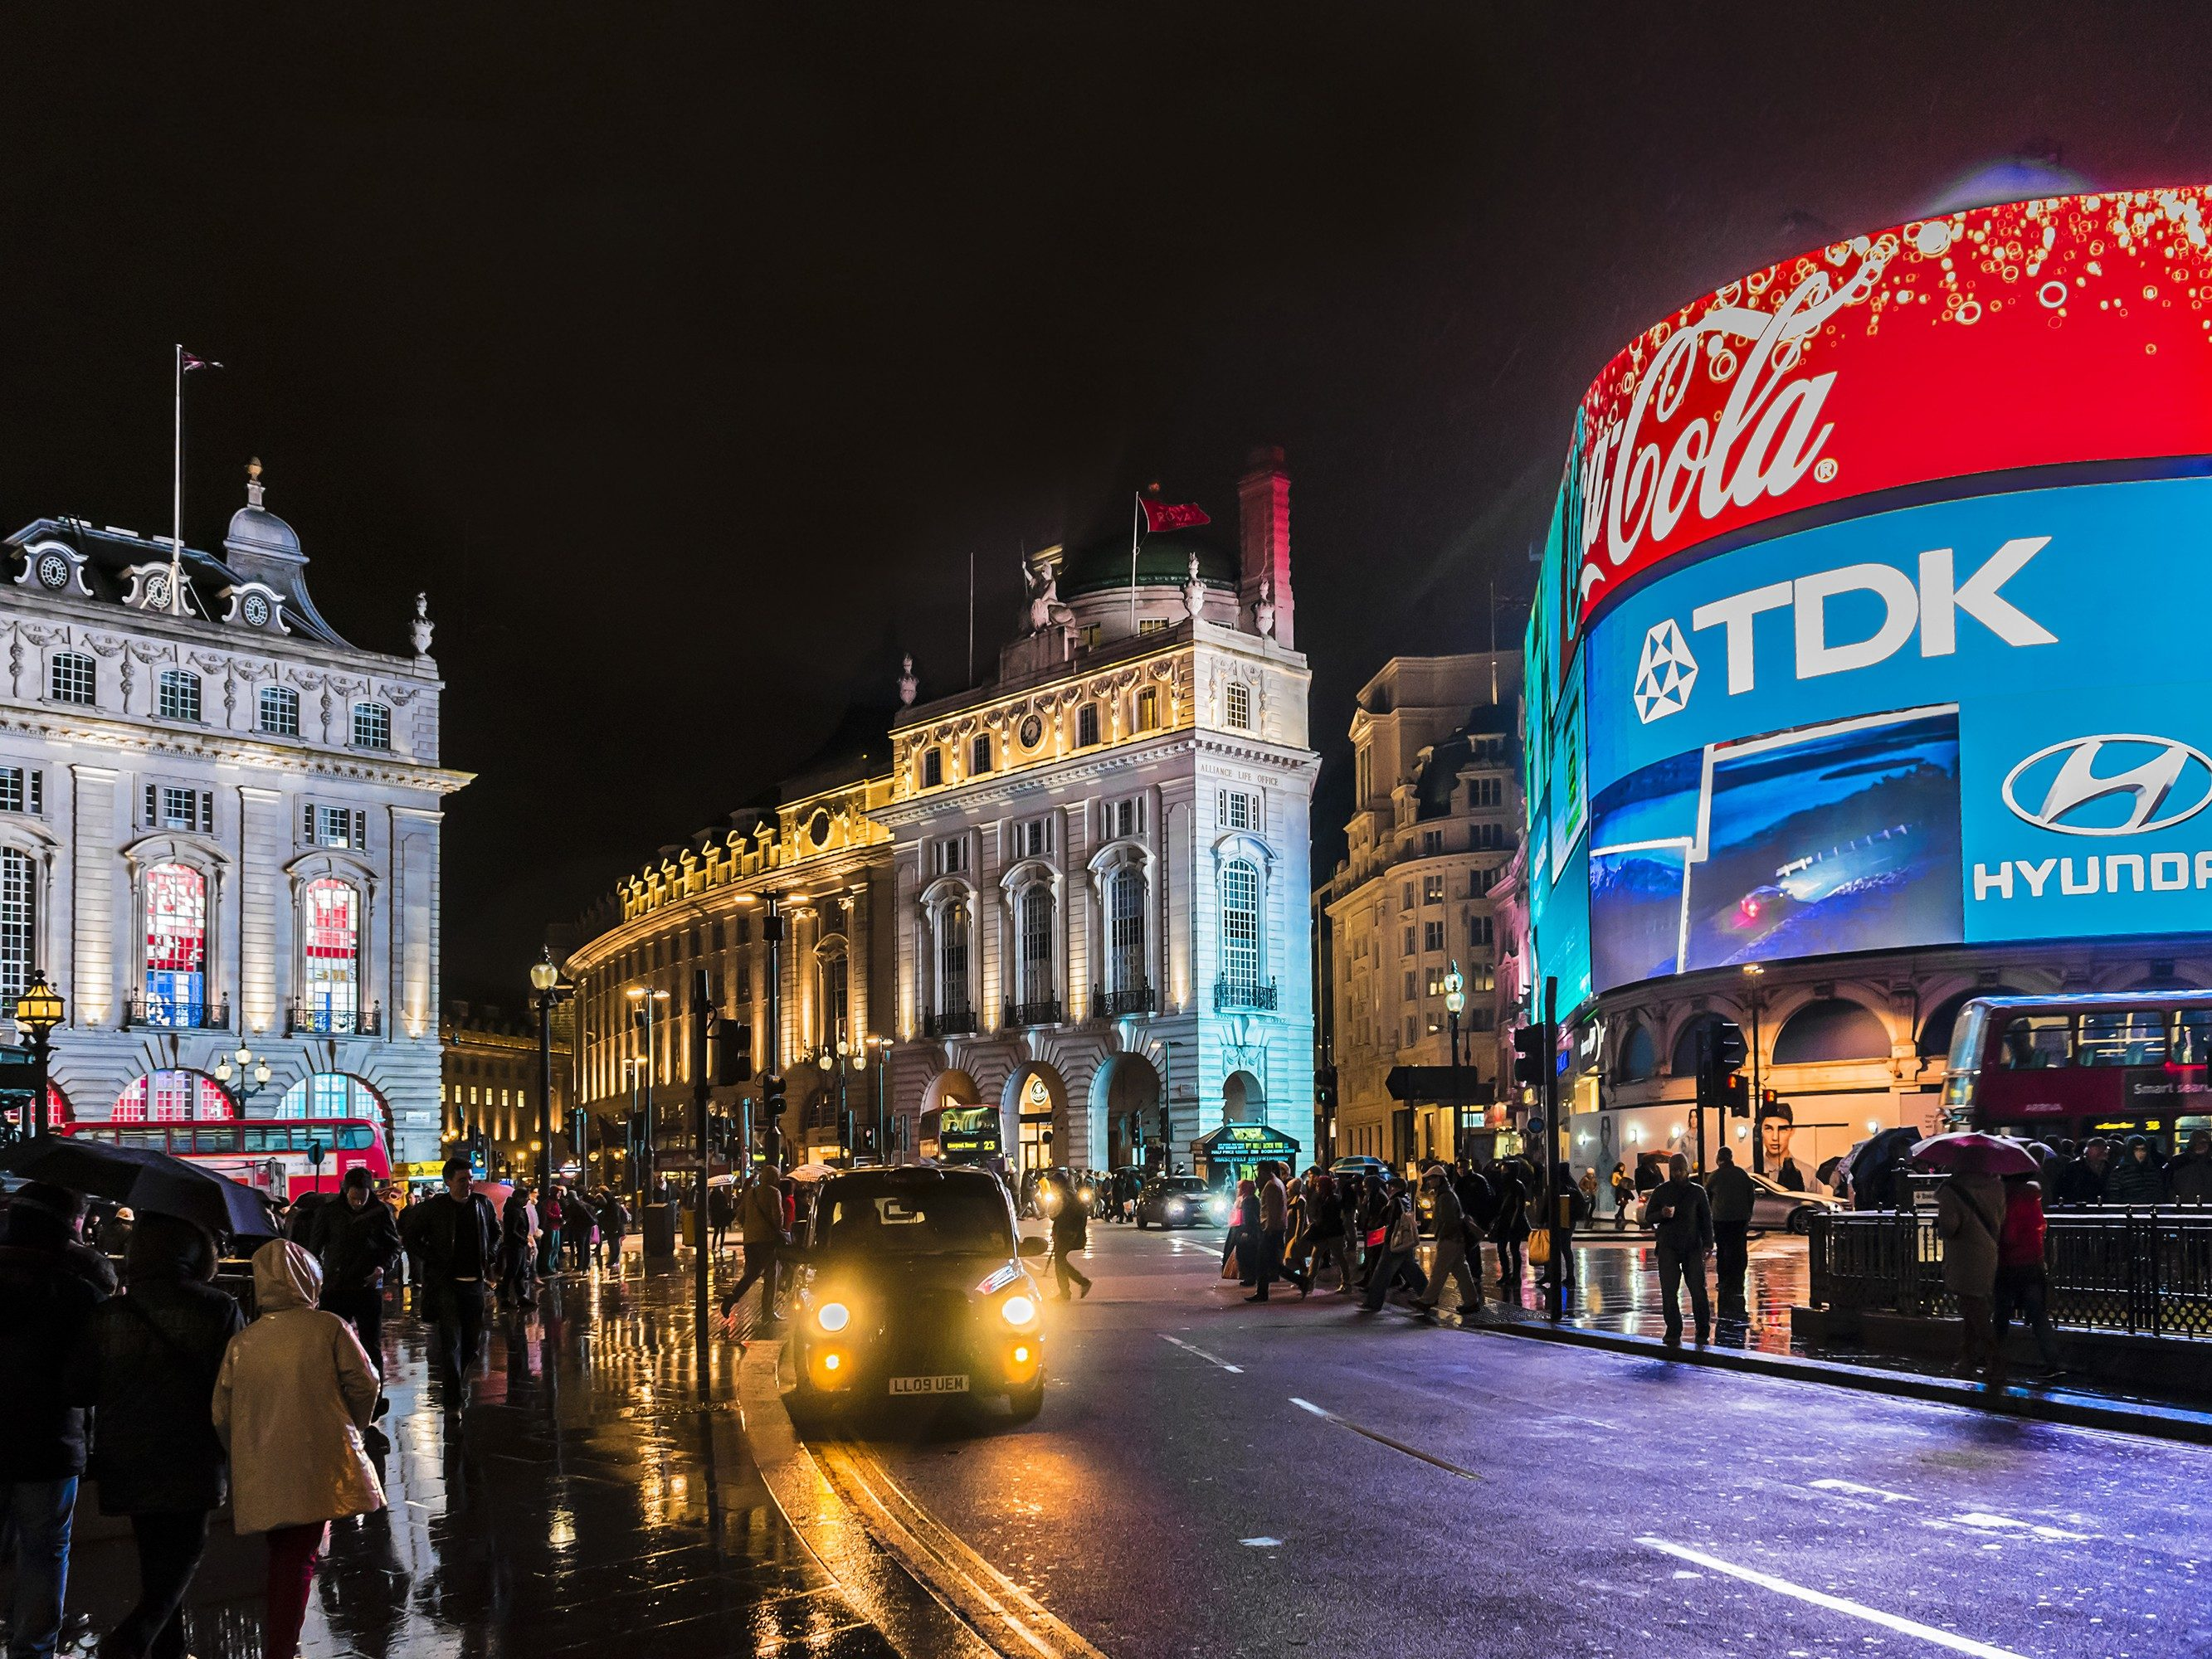 London attractions: Piccadilly Circus